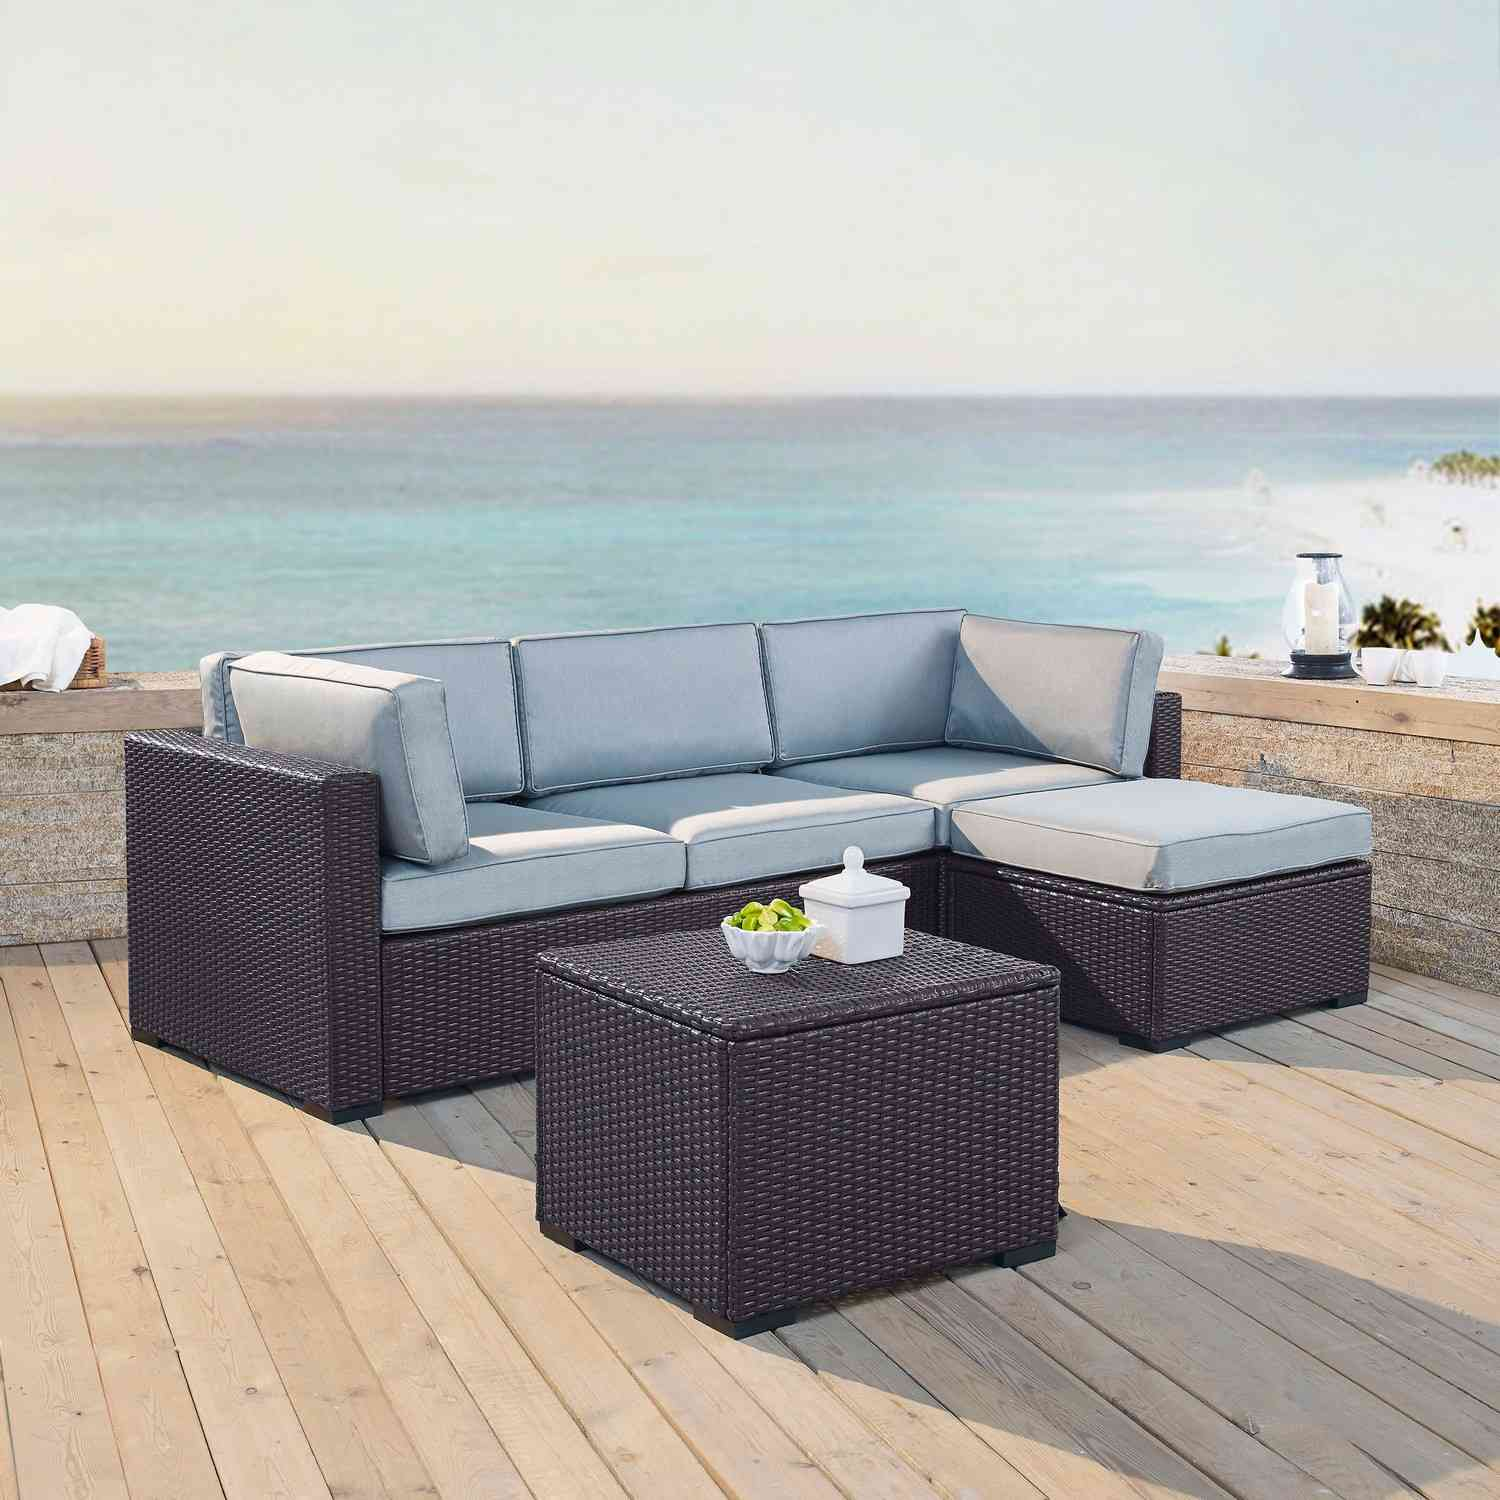 Crosley Biscayne 4-PC Outdoor Wicker Sectional Set - Loveseat, Corner Chair, Ottoman, Coffee Table - Mist/Brown